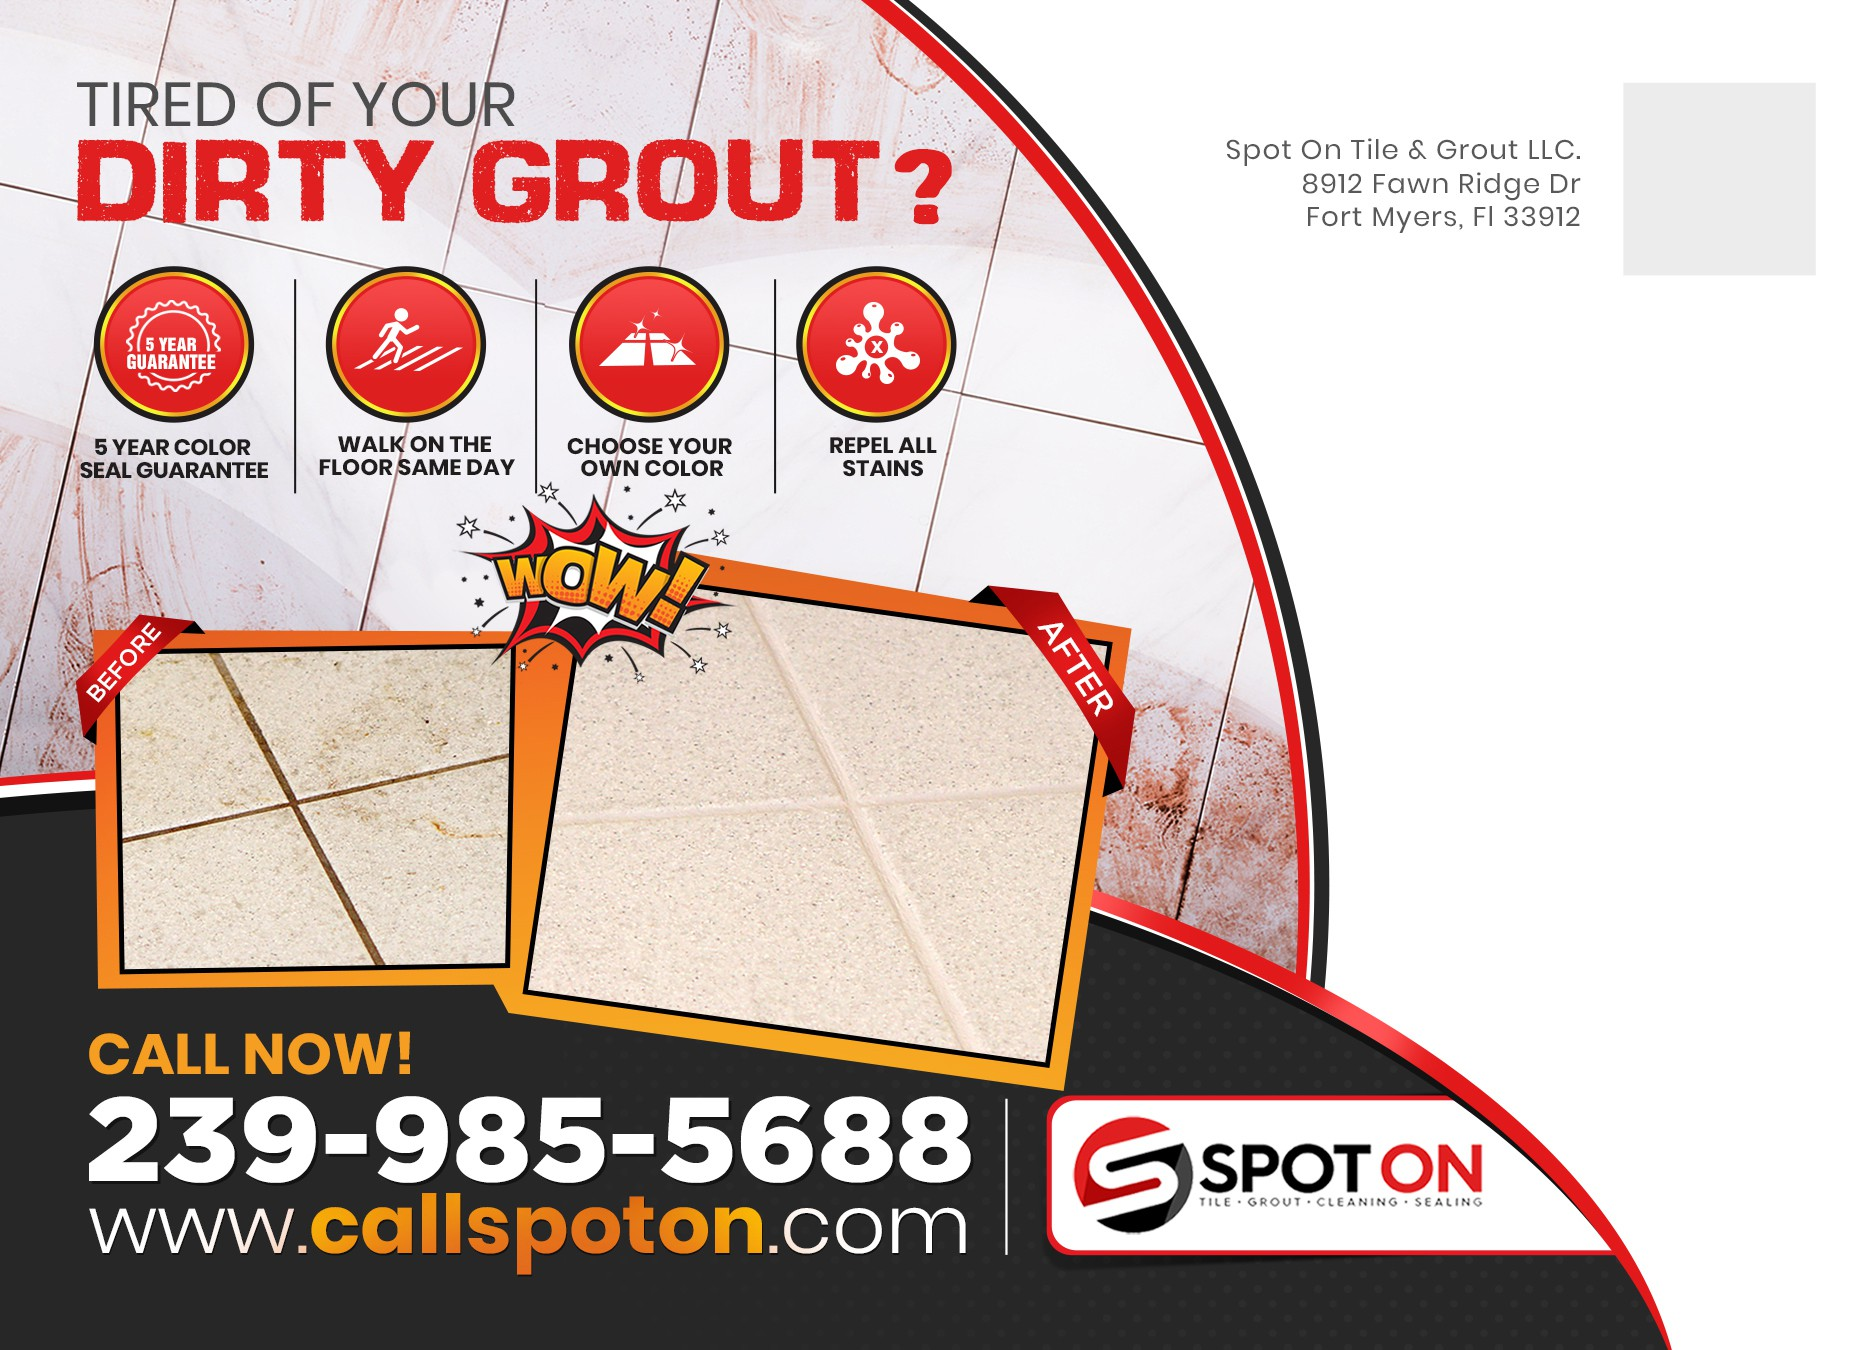 Tile and Grout Cleaning company looking for a BOLD new ad!